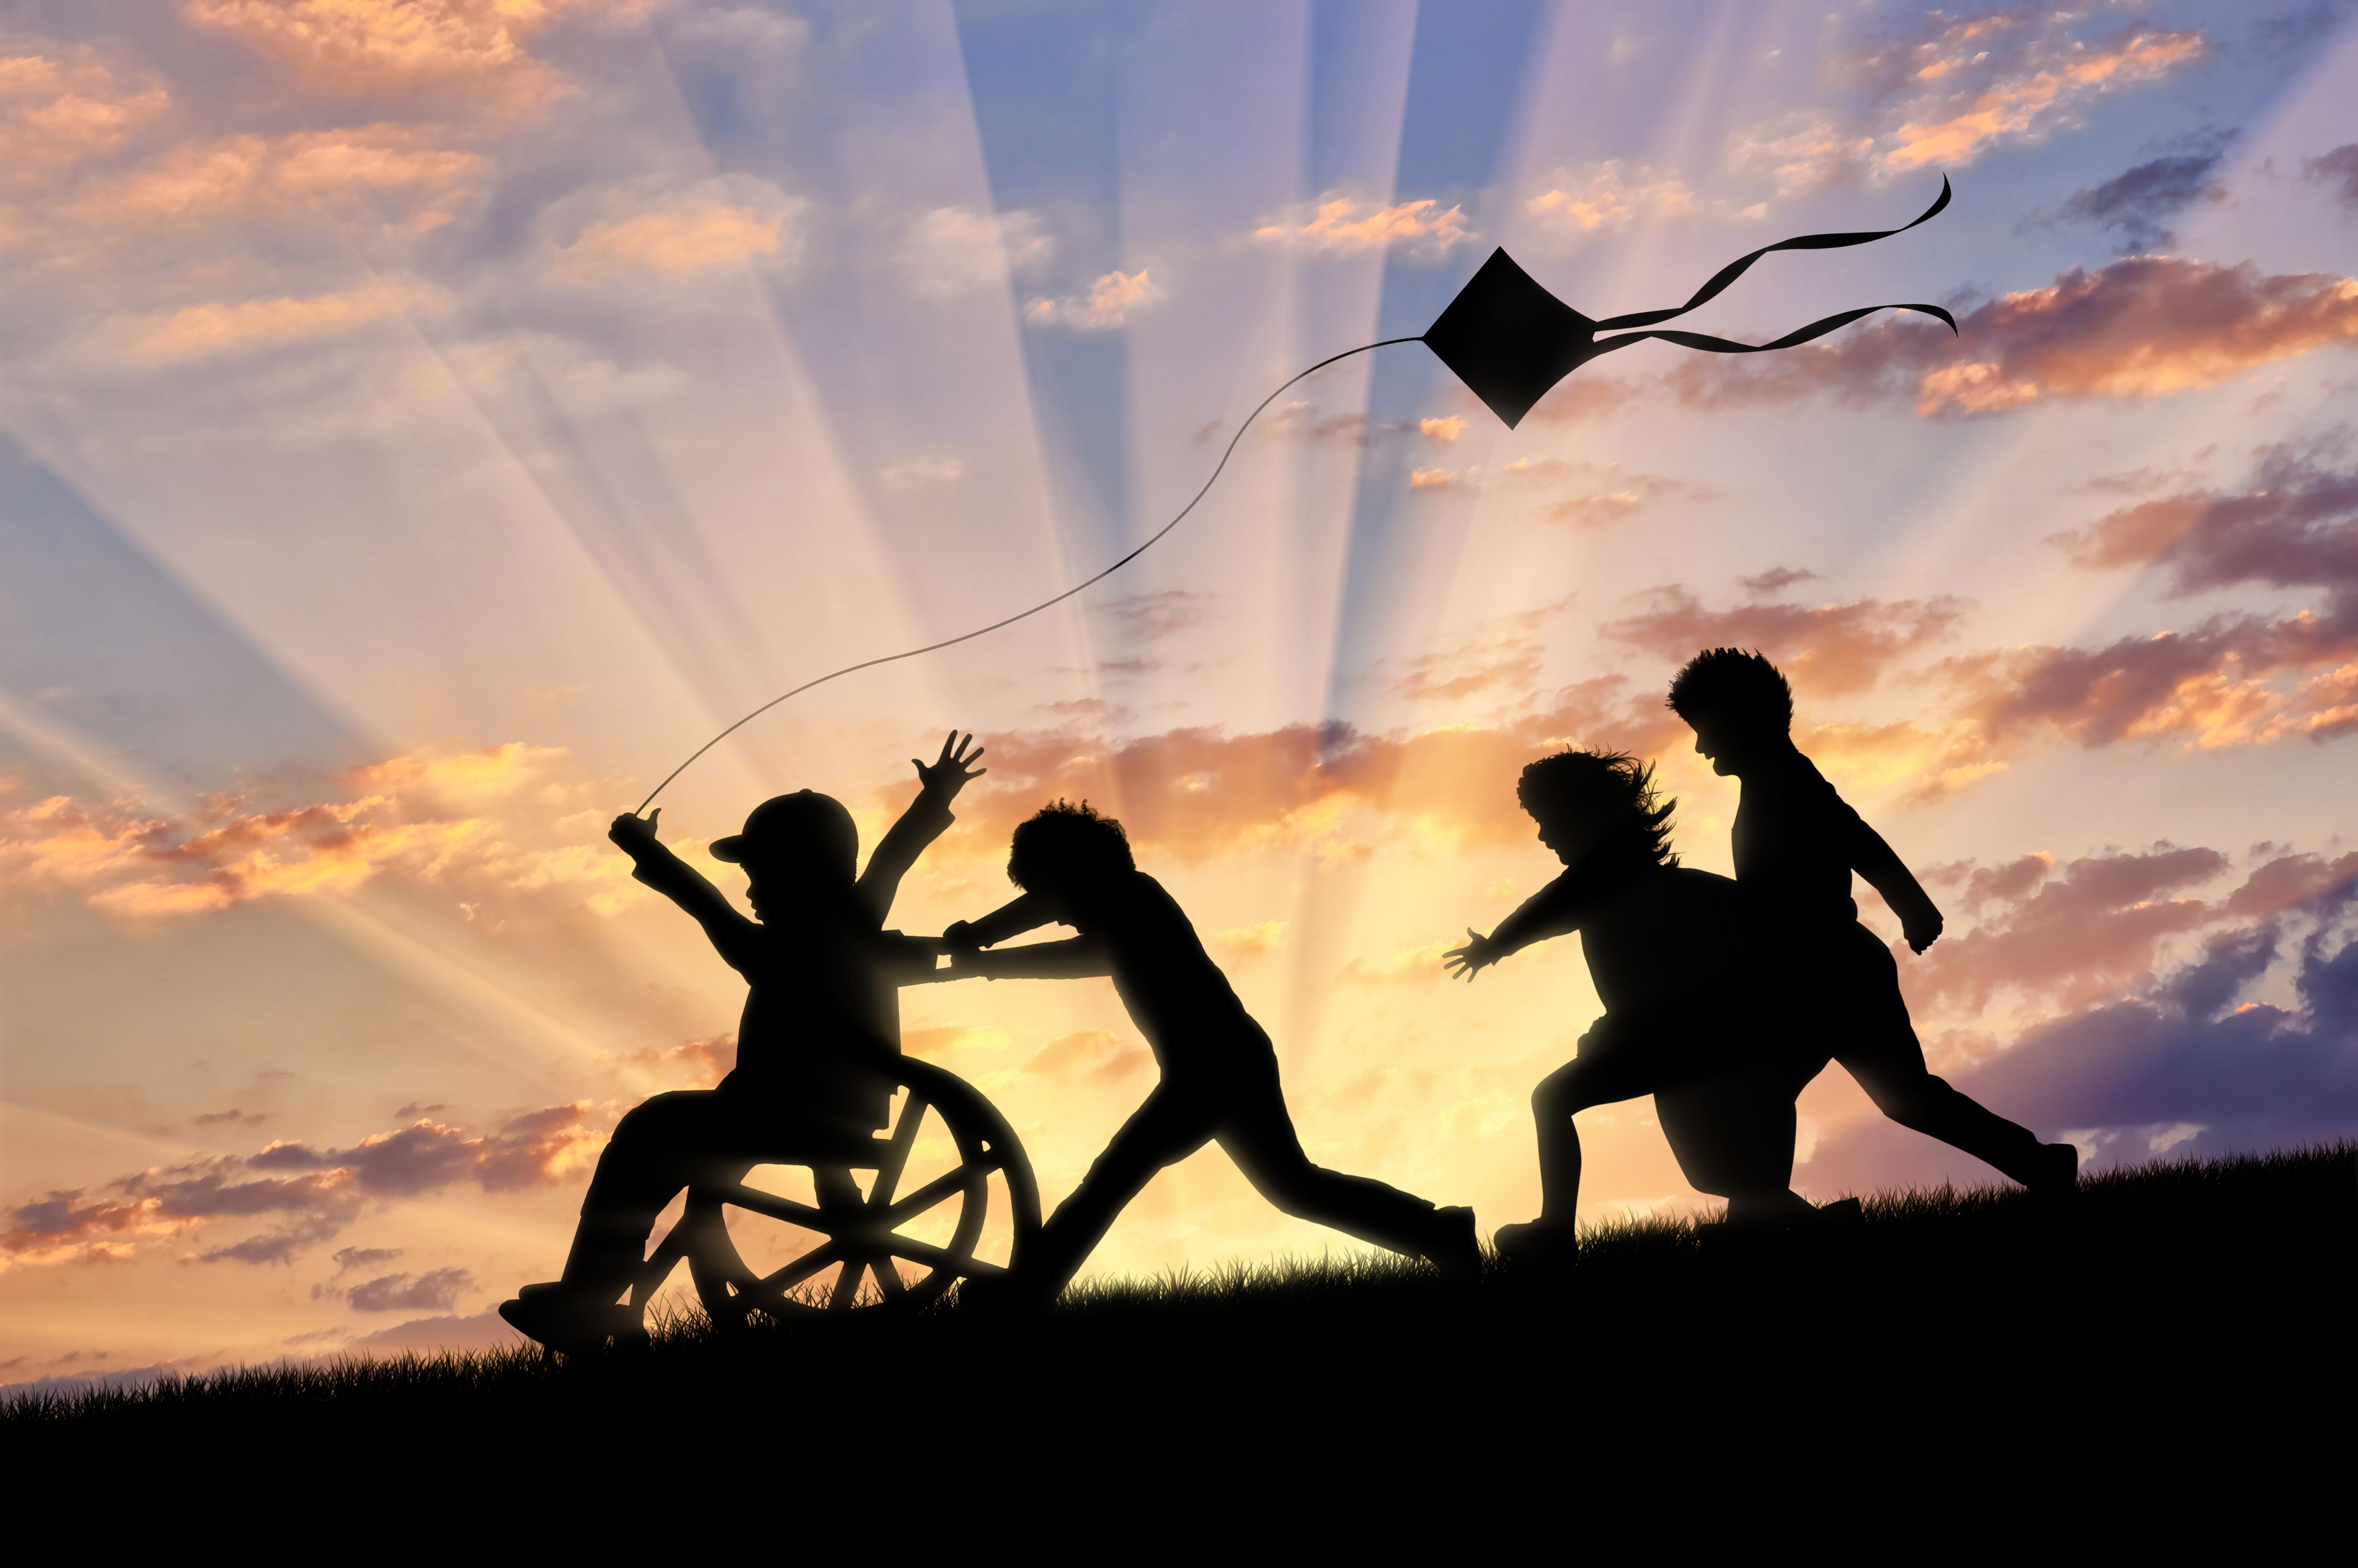 An image of a child in a wheelchair, holding a kite. Being pushed by other children playing too. Image is for decorative purposes only.